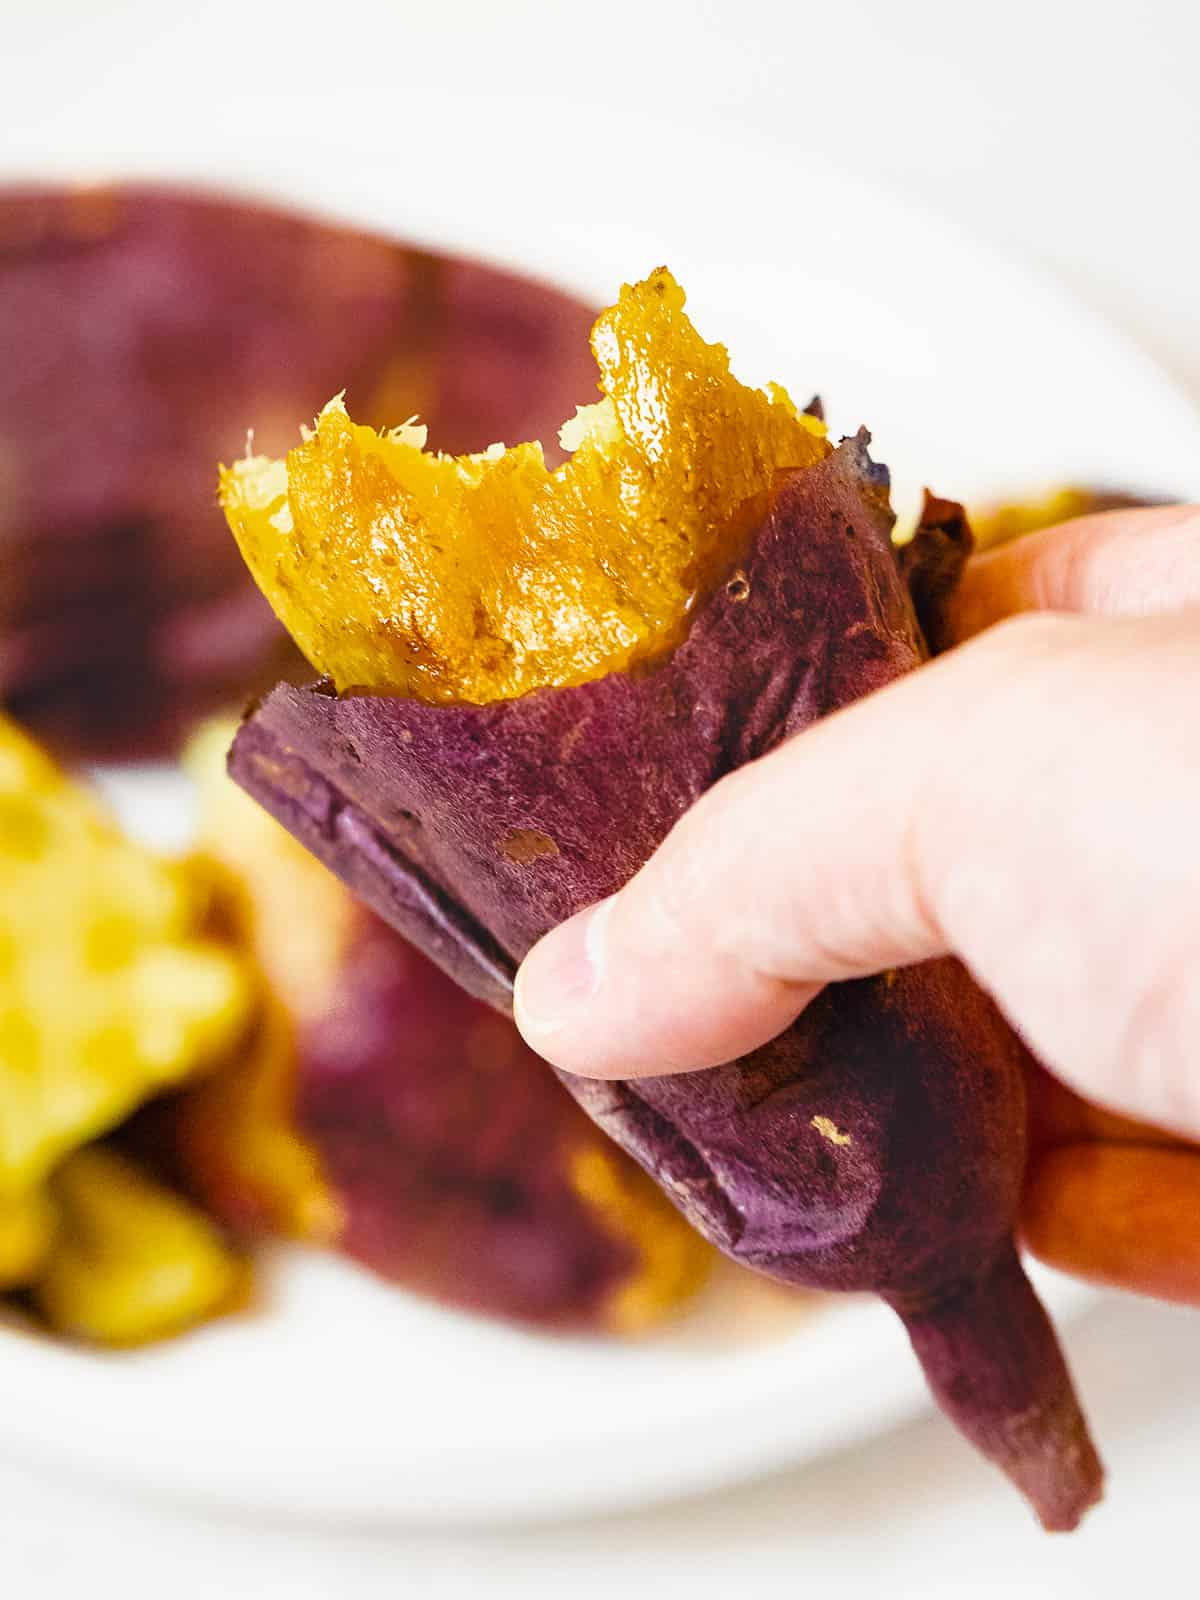 Hand holding a perfectly baked Korean sweet potato with golden, caramelized inside and crisp purple skin.